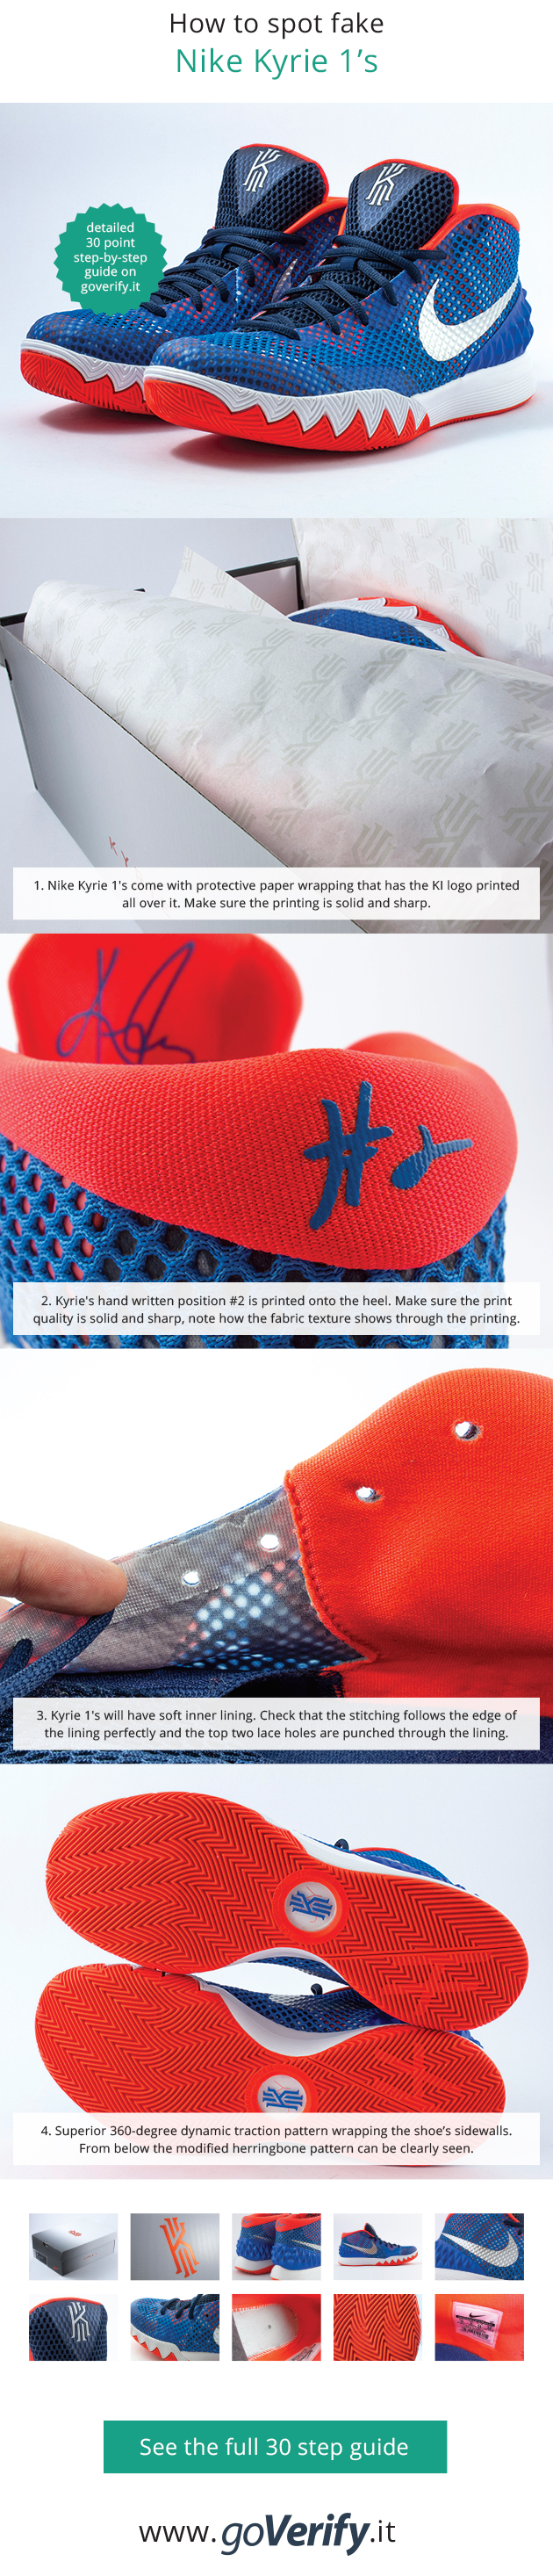 new styles edd84 24bb7 How to spot fake Nike Kyrie 1 s, go to www.goverify.it for a full 30 point  step-by-step guide.